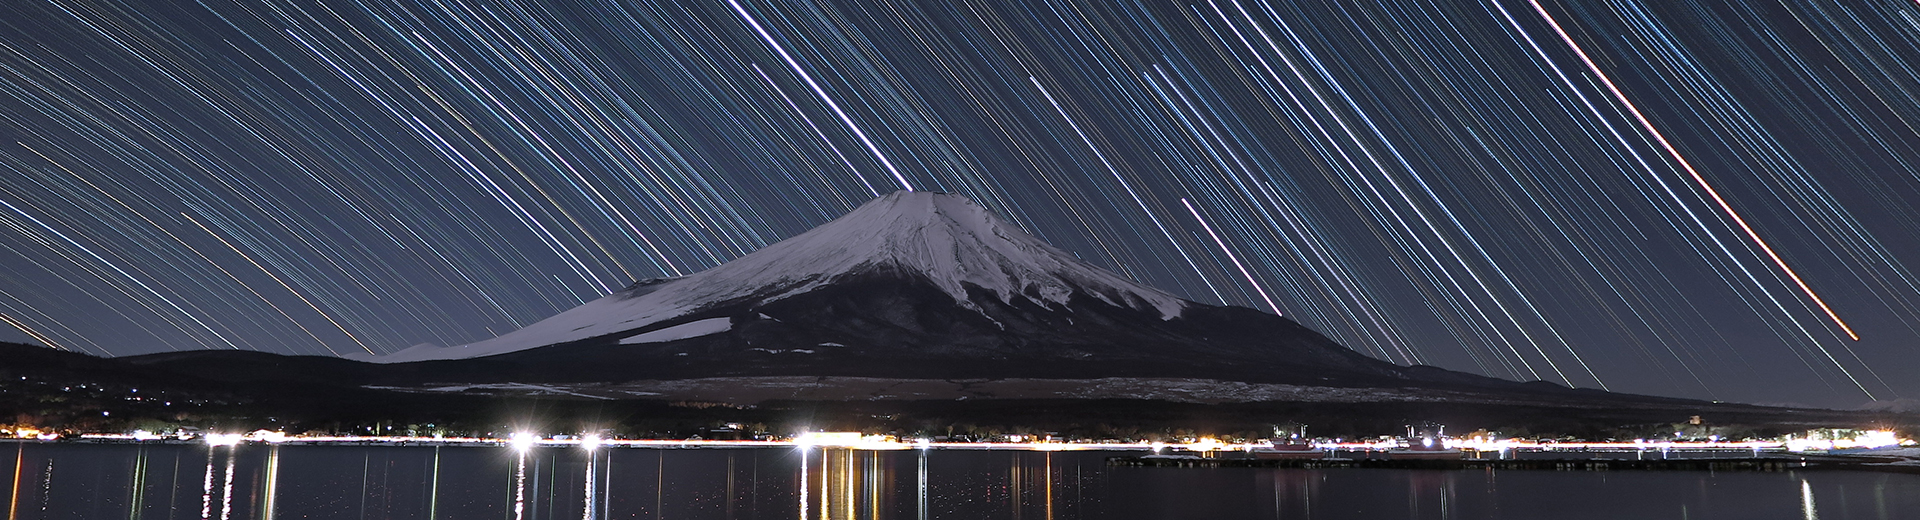 star trails over mountain